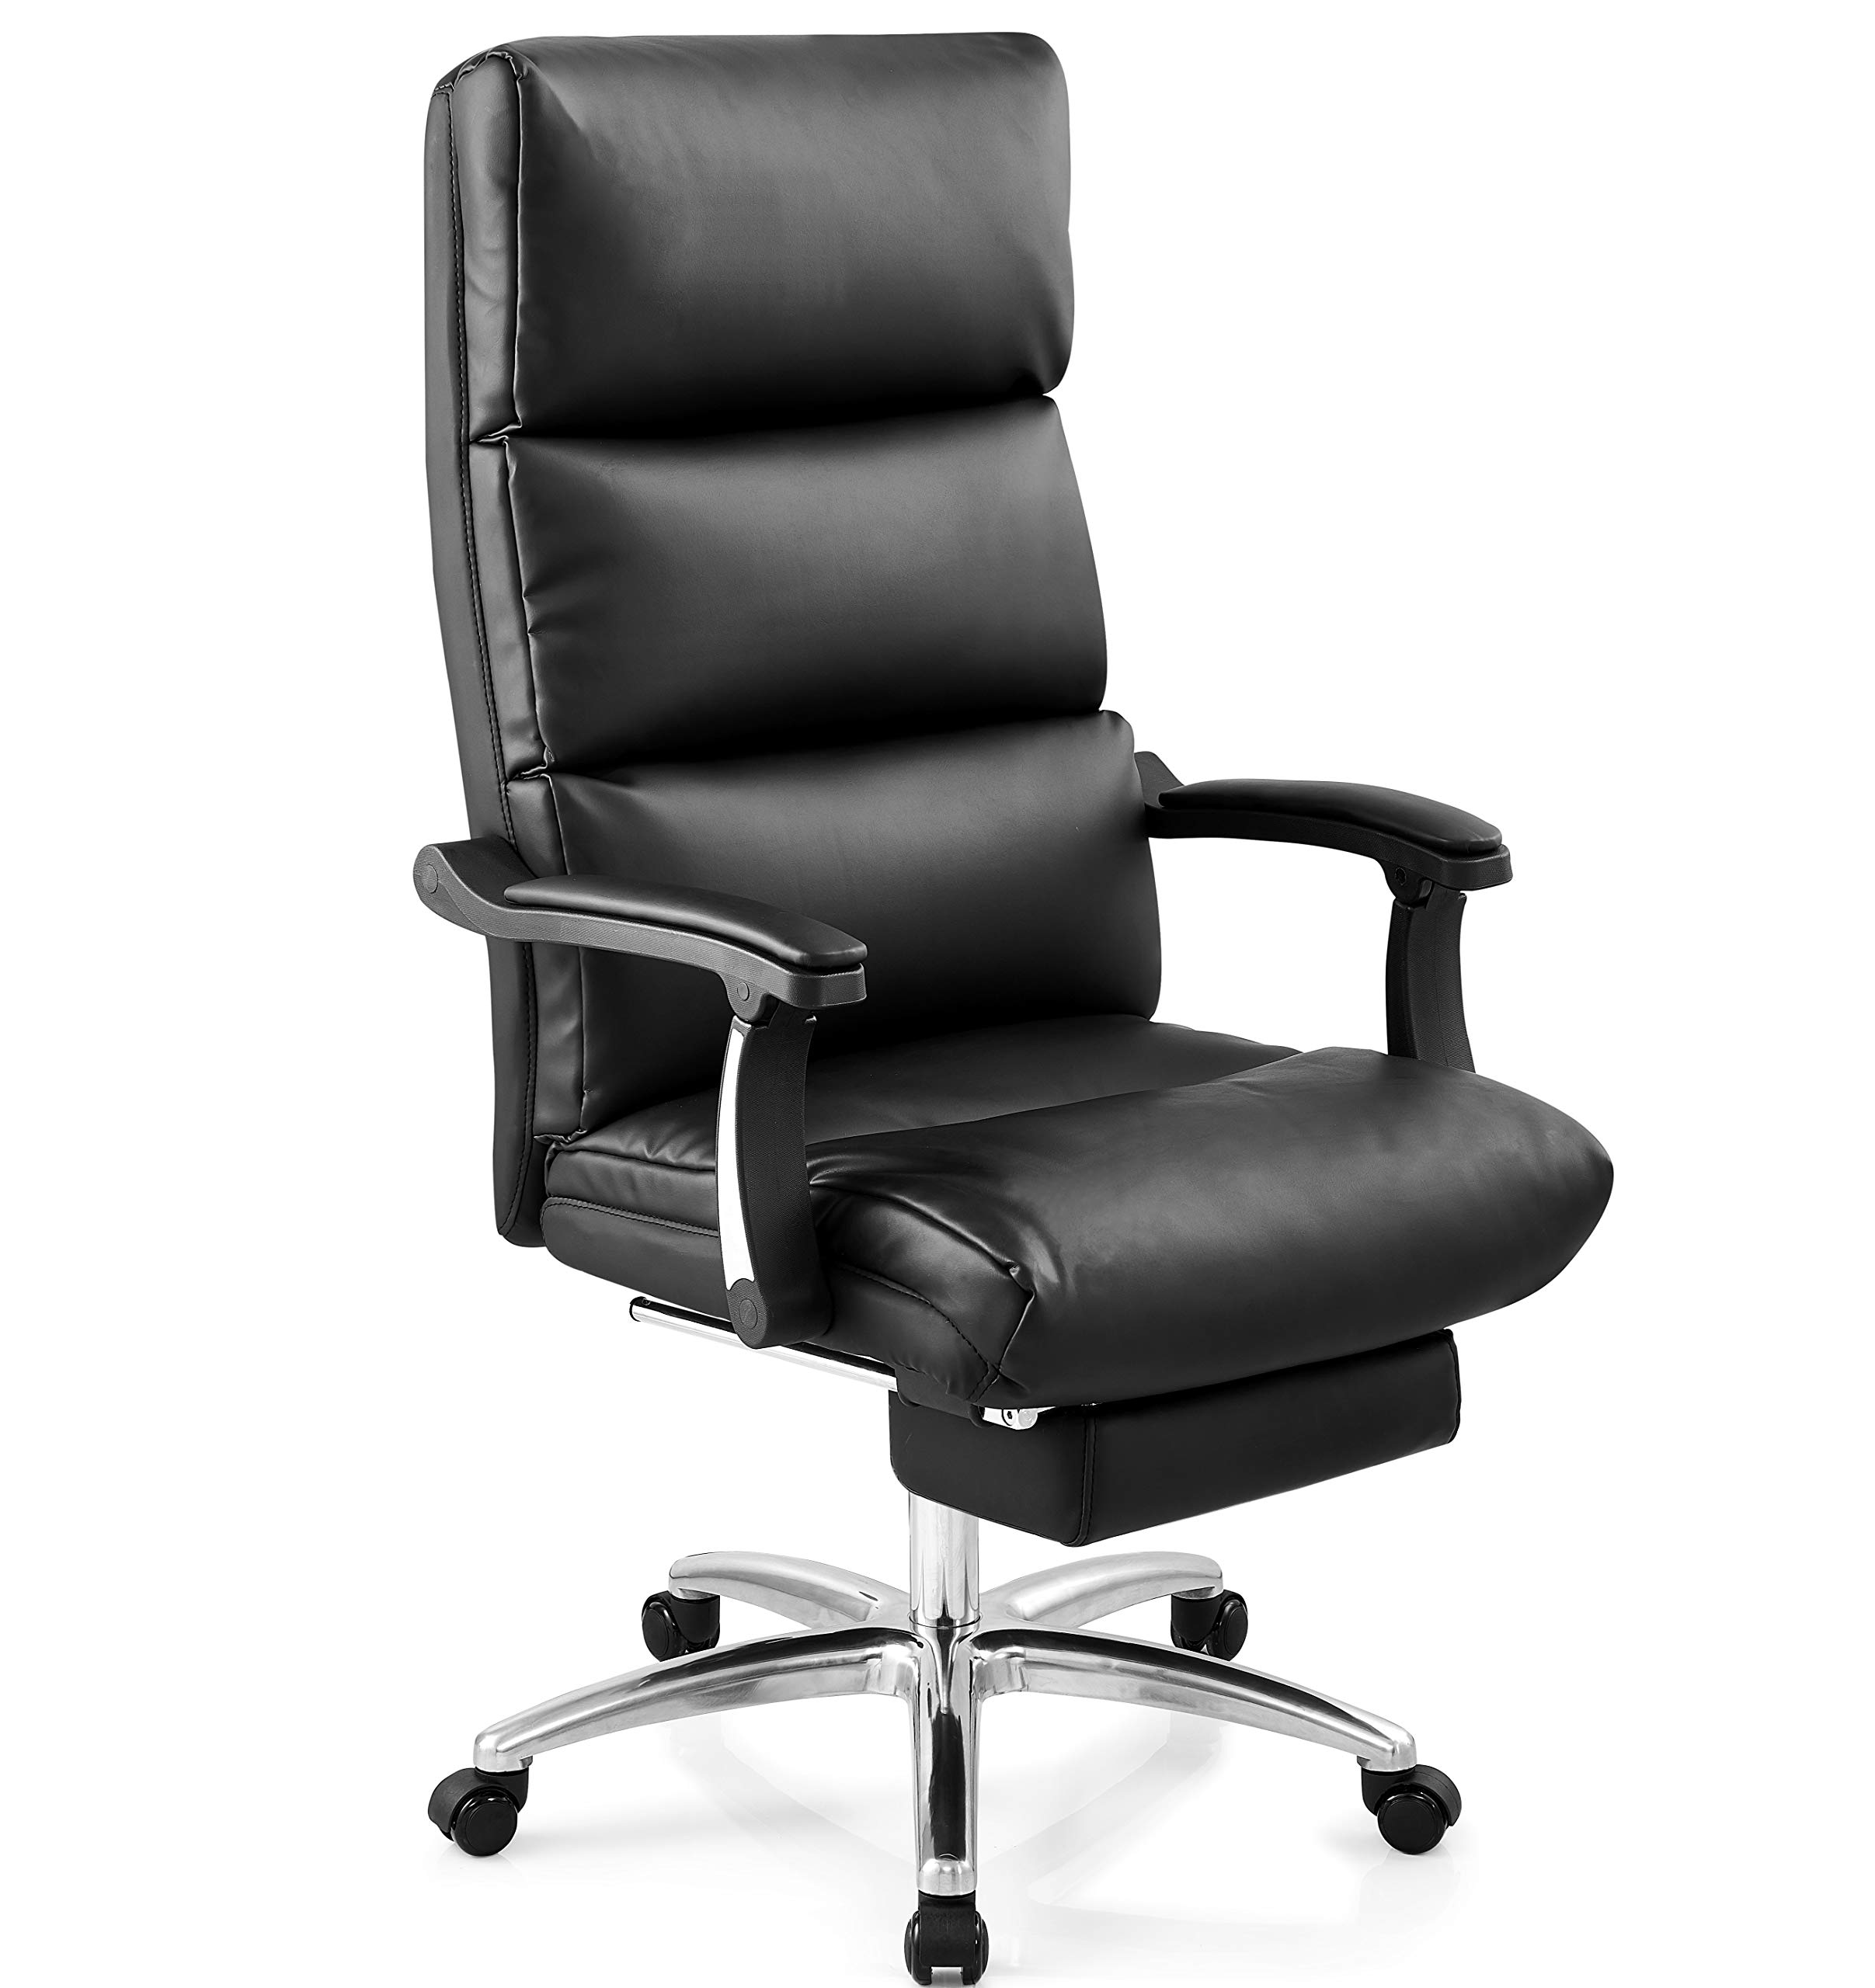 Ticova Leather Office Chair - High Back Executive Chair with Thick Padding and Textured Leather - Reclining Computer Chair with Footrest and Ergonomic Segmented Back, Black